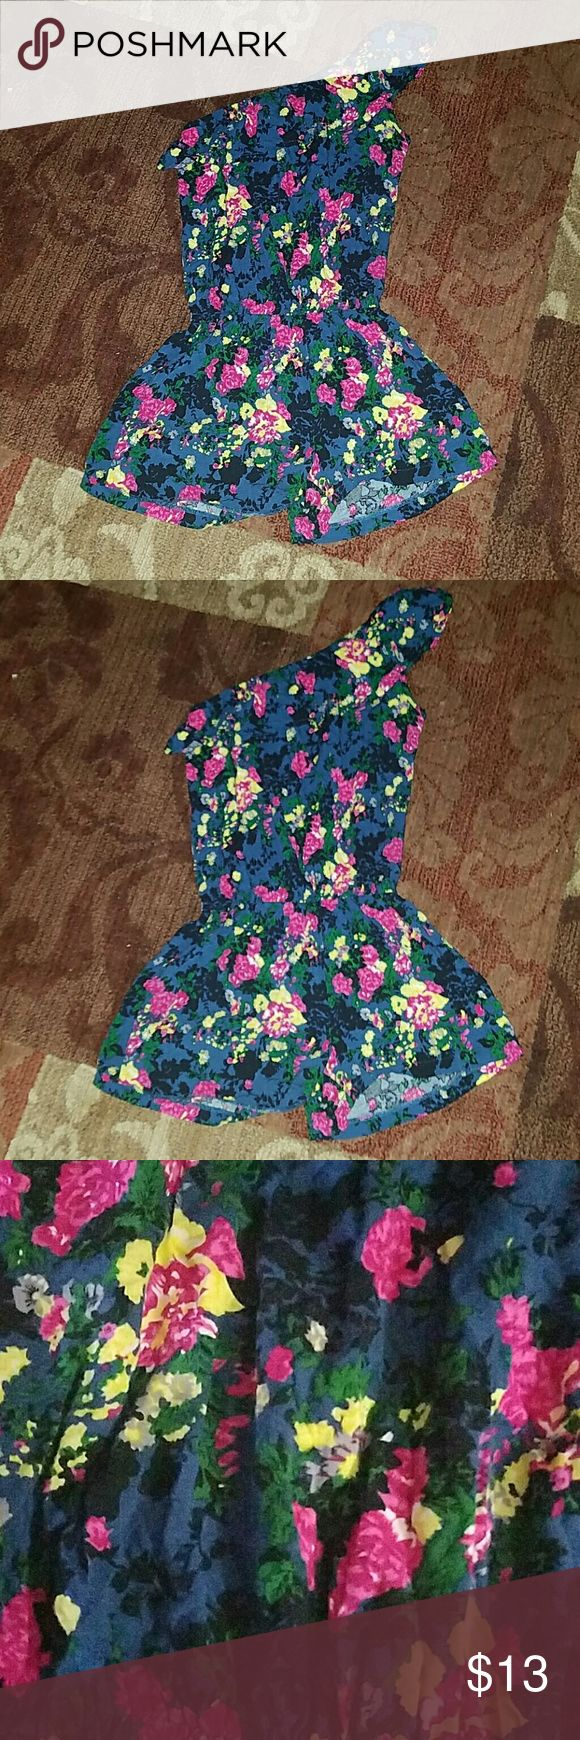 Adorable body central floral romper Adorable body central floral one shoulder shorts romper one piece suit like new 100% rayon hand wash very soft size small Body Central Shorts